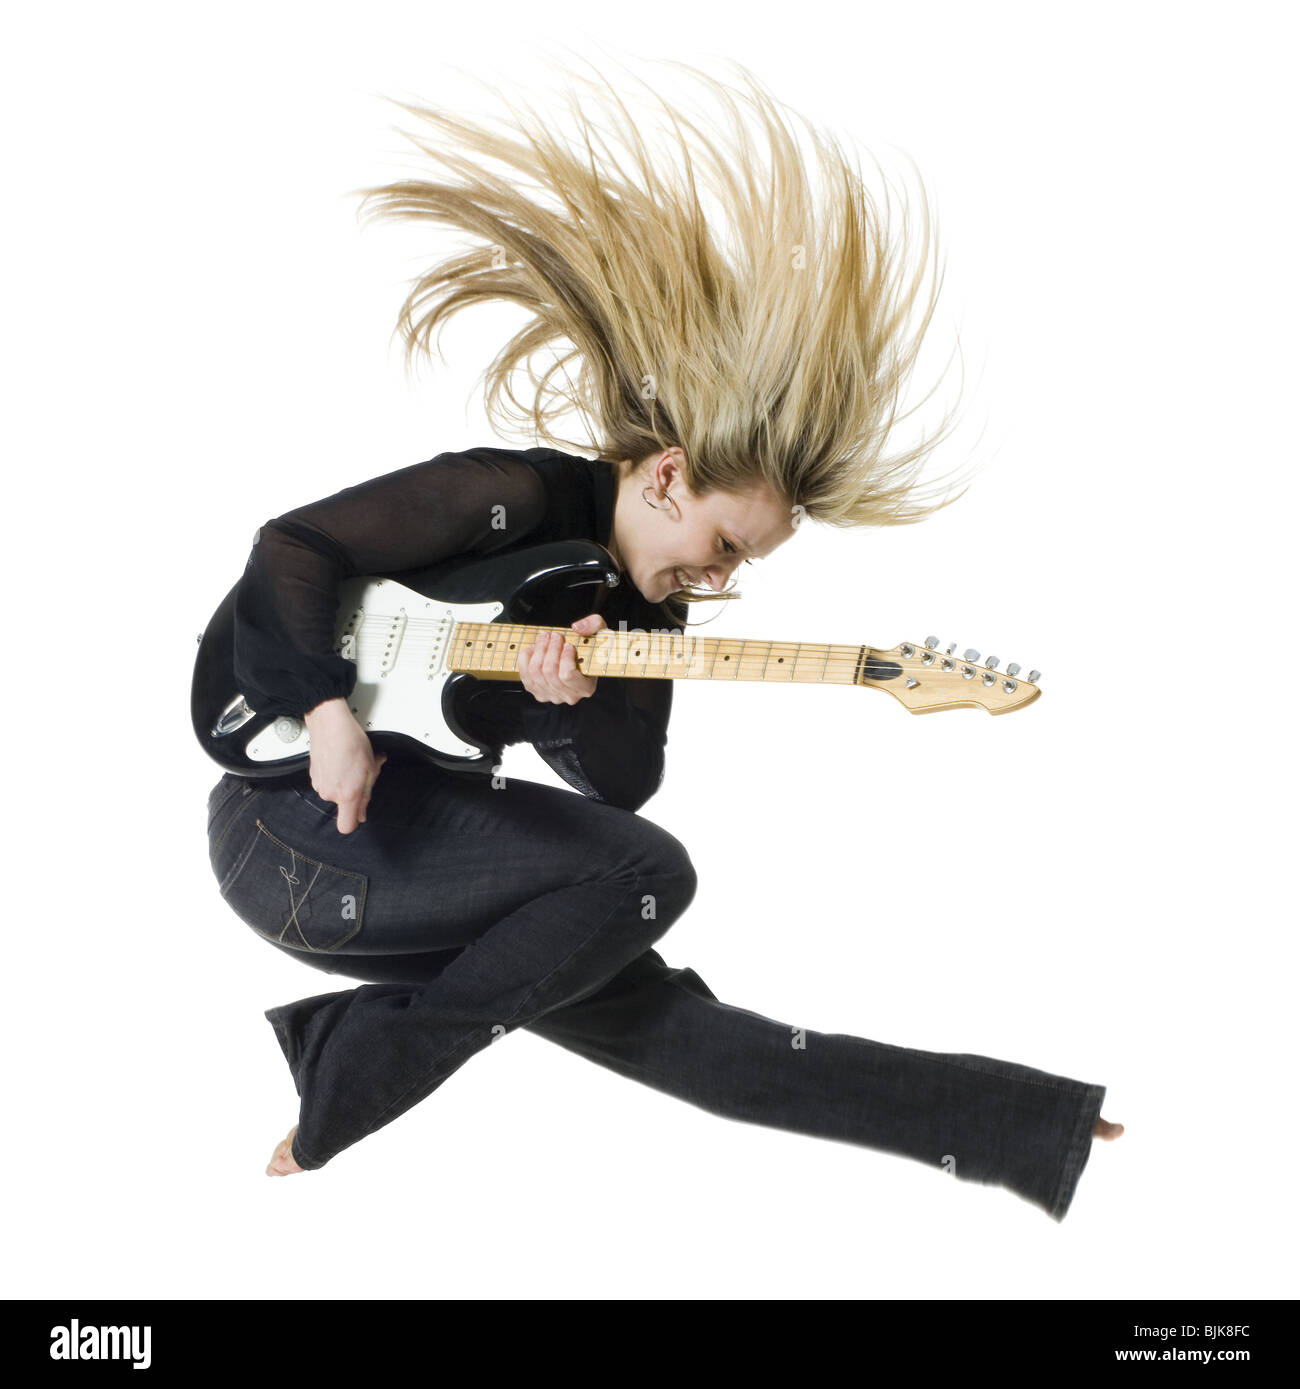 Profile of woman jumping with electric guitar - Stock Image